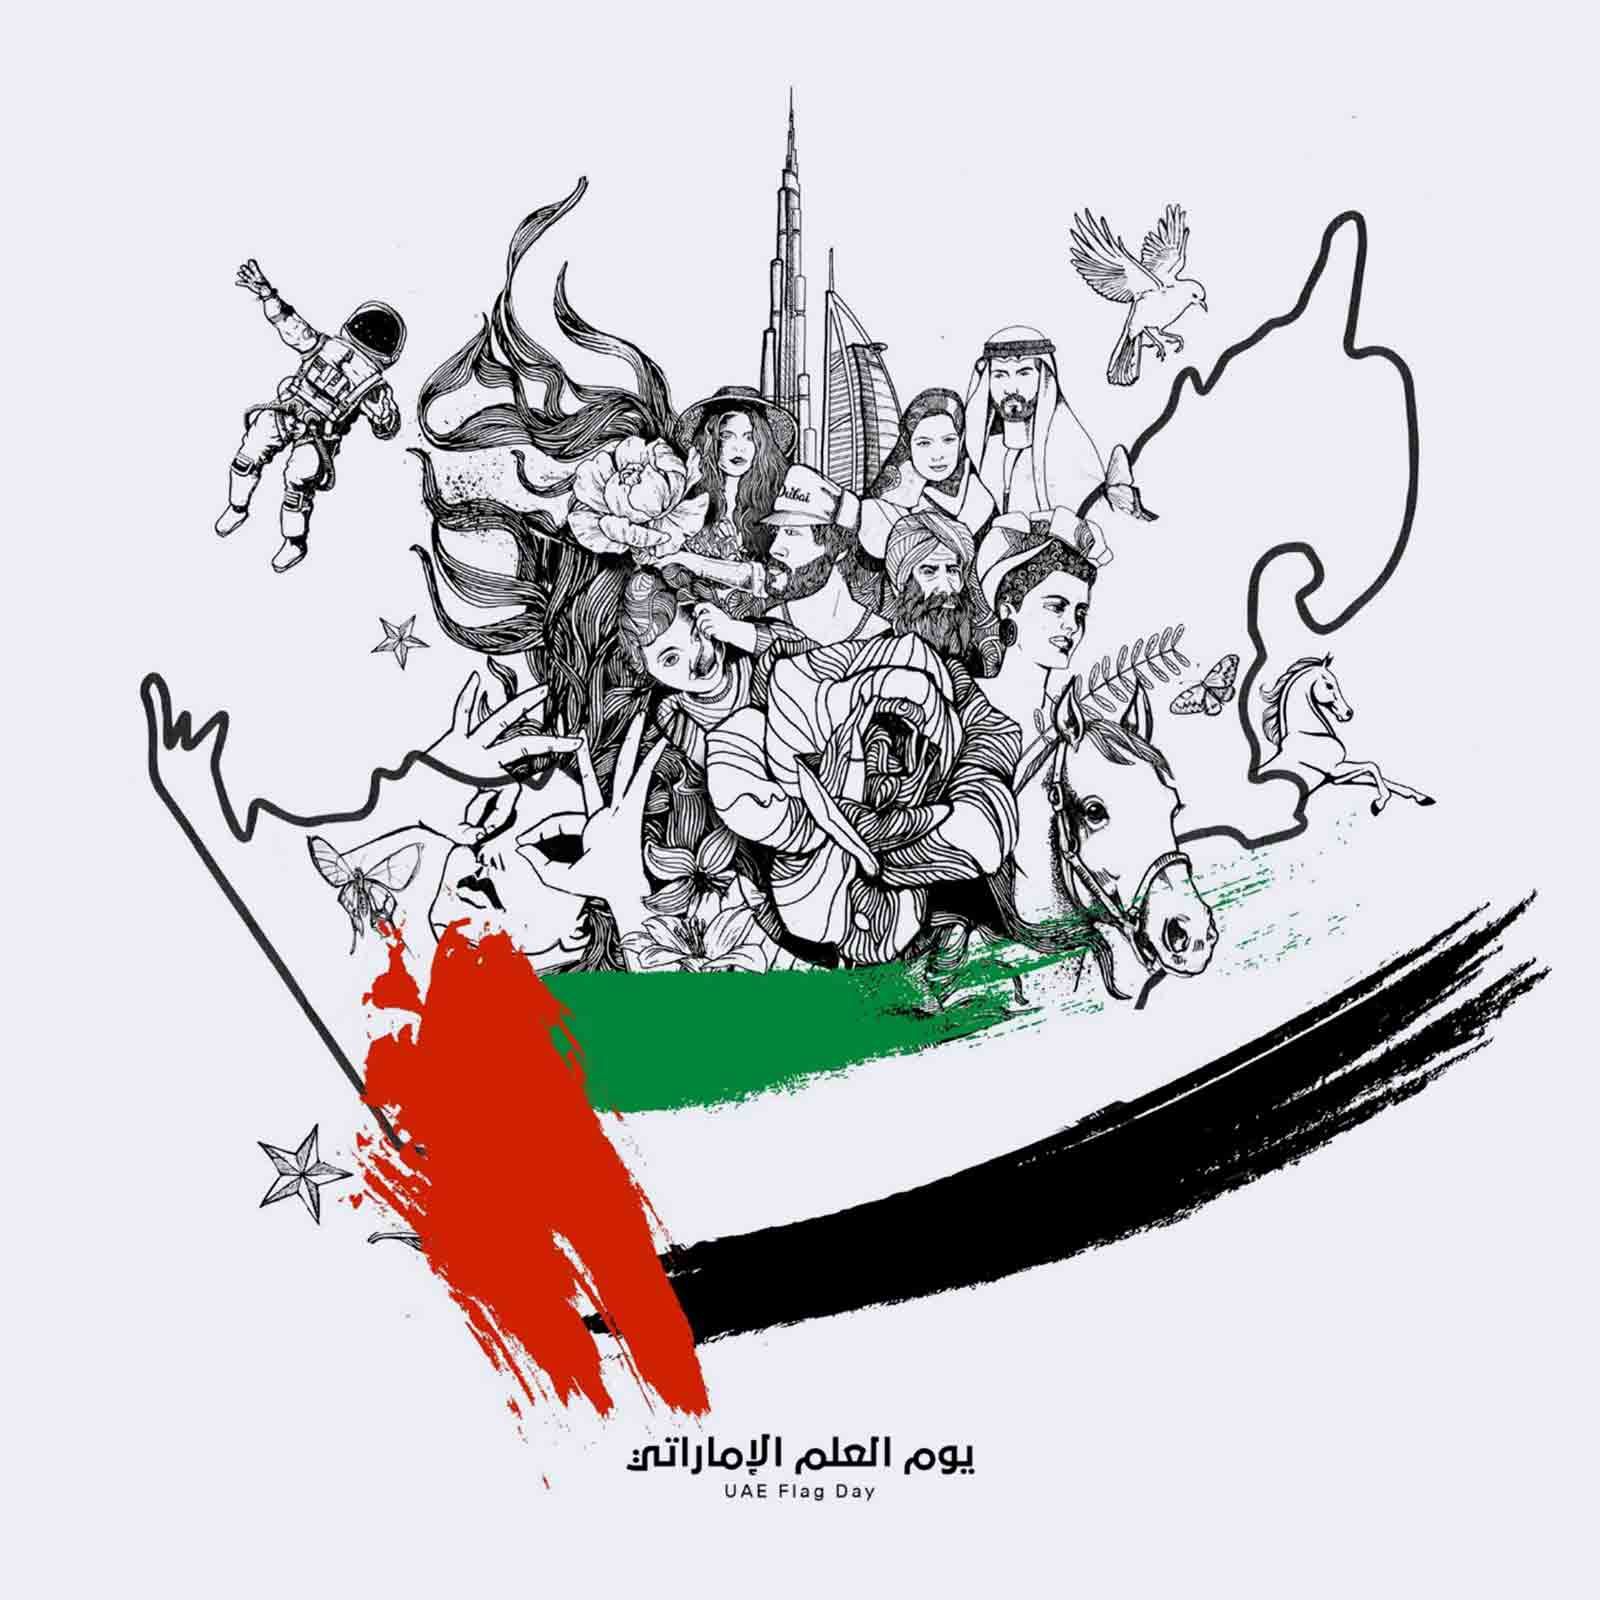 UAE Flag Day - Artwork